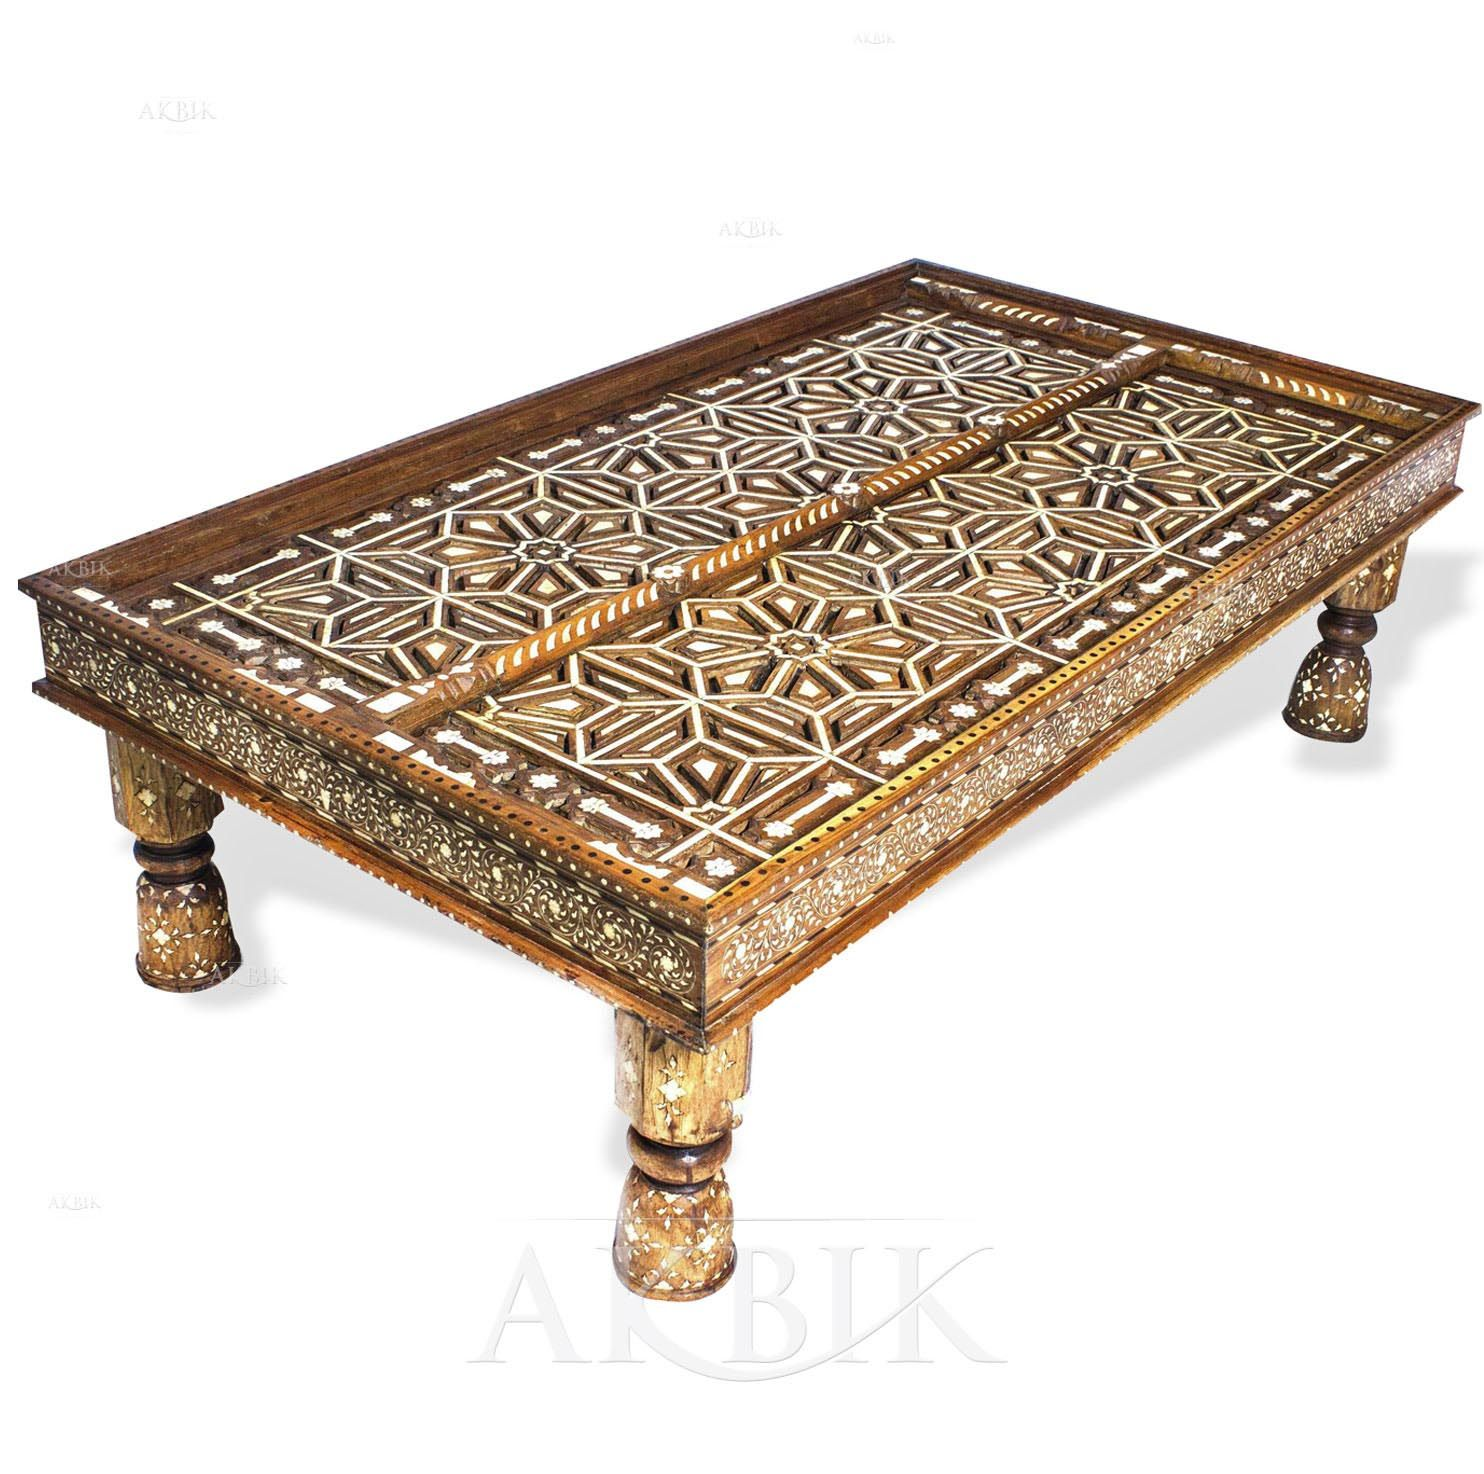 Moroccan Style Coffee Table Mosaic Coffee Table Coffee Table